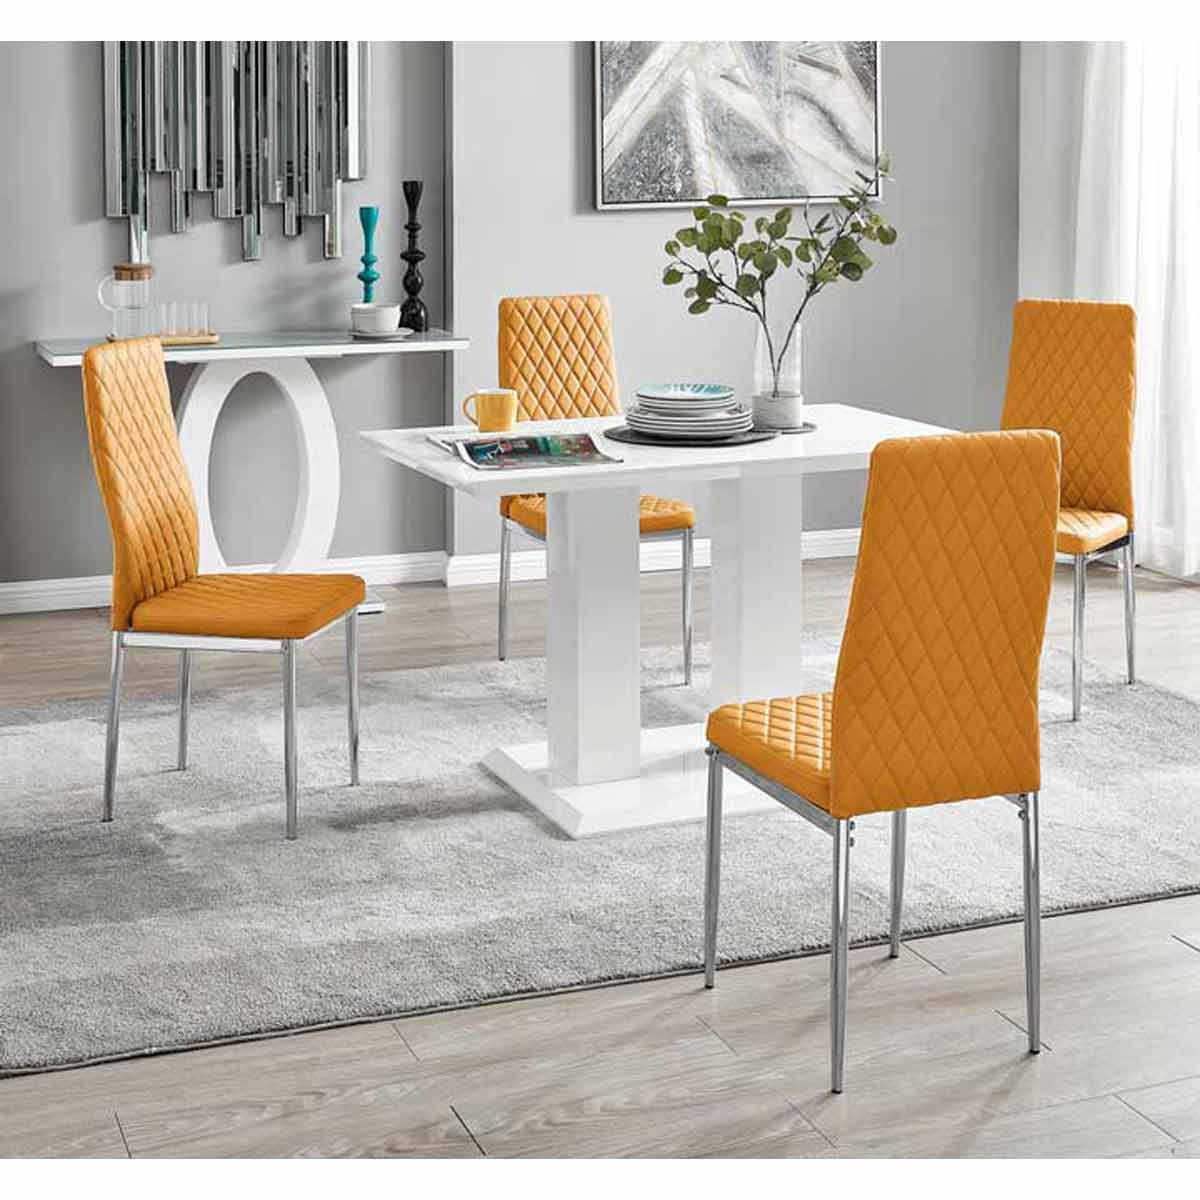 Furniture Box Imperia 4 Modern White High Gloss Dining Table And 4 Mustard Milan Chairs Set